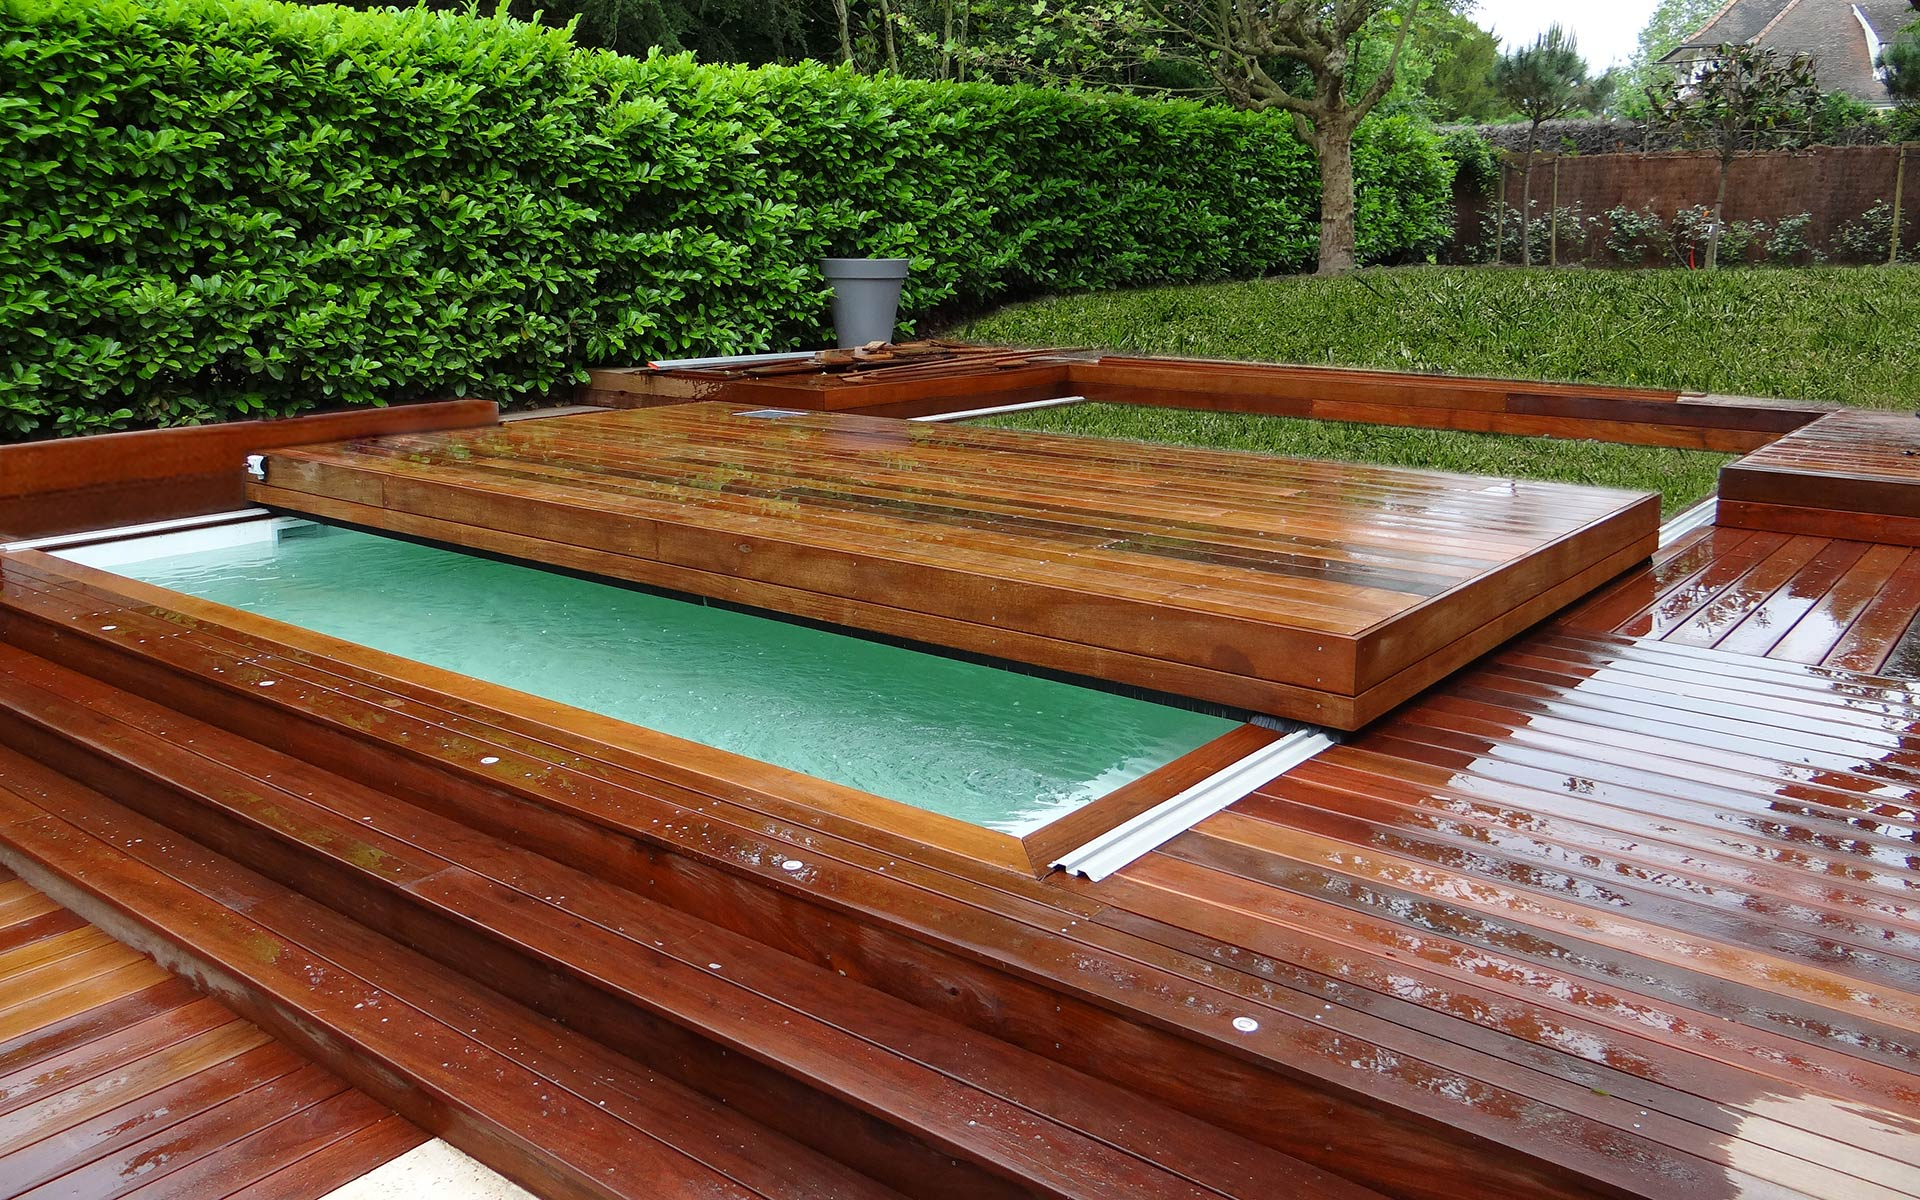 terrasse mobile pour piscine hidden pool fond mobile pour piscine hidden pool